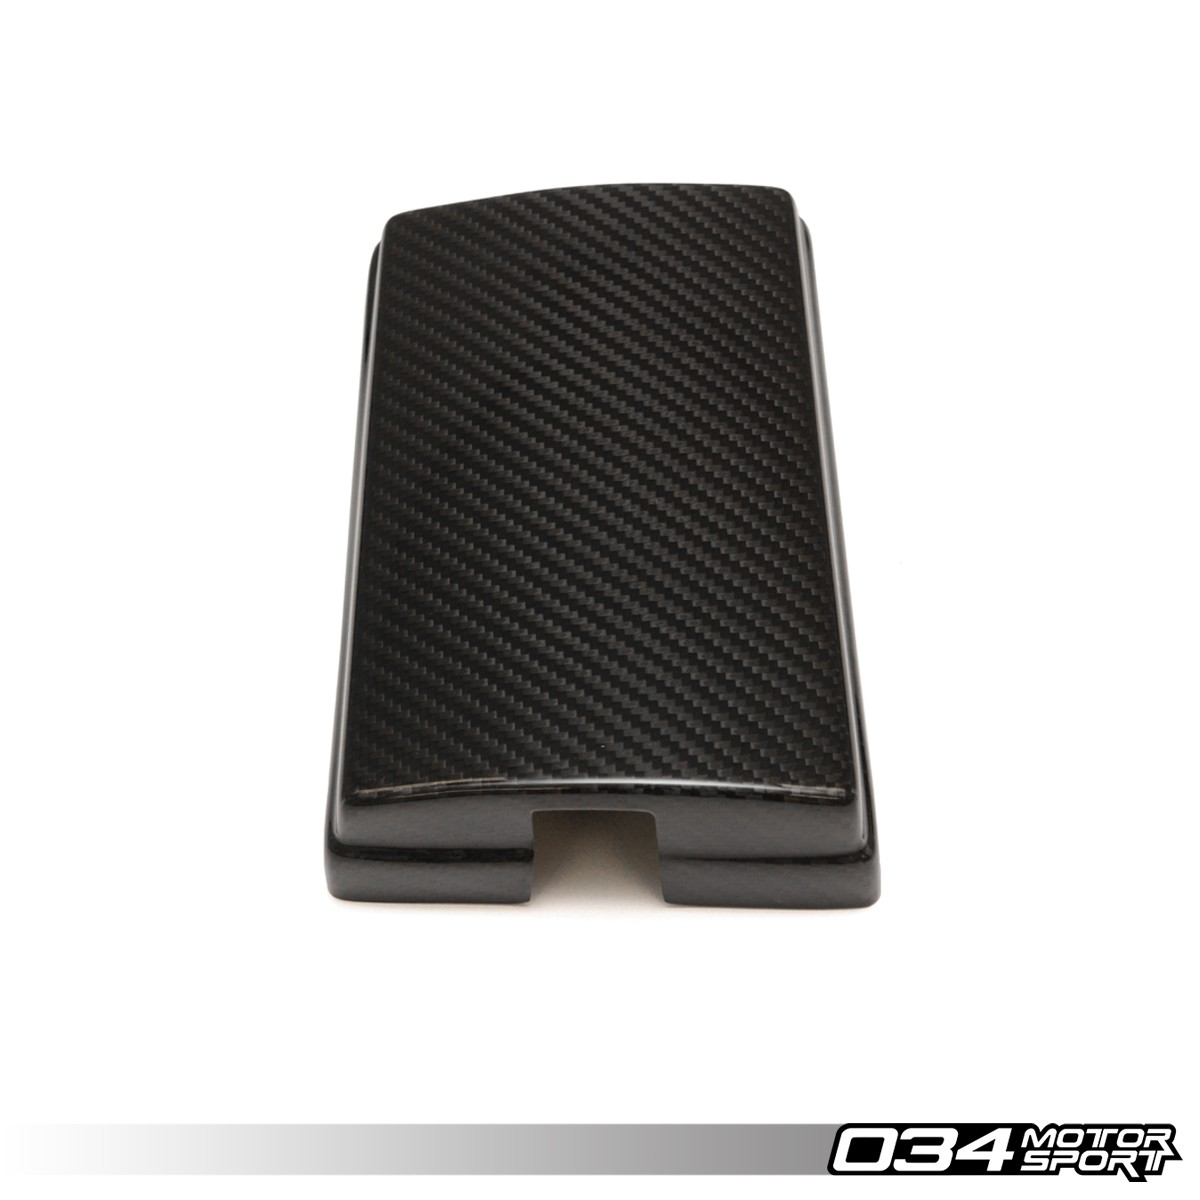 034motorsport carbon fiber fuse box cover audi 8v a3 s3 volkswagen mkvii golf r gti mqb 034 1zz 0002 3 carbon fiber fuse box cover, mkvii volkswagen gti & golf r, 8v Mk VII Shoulder Bag at bakdesigns.co